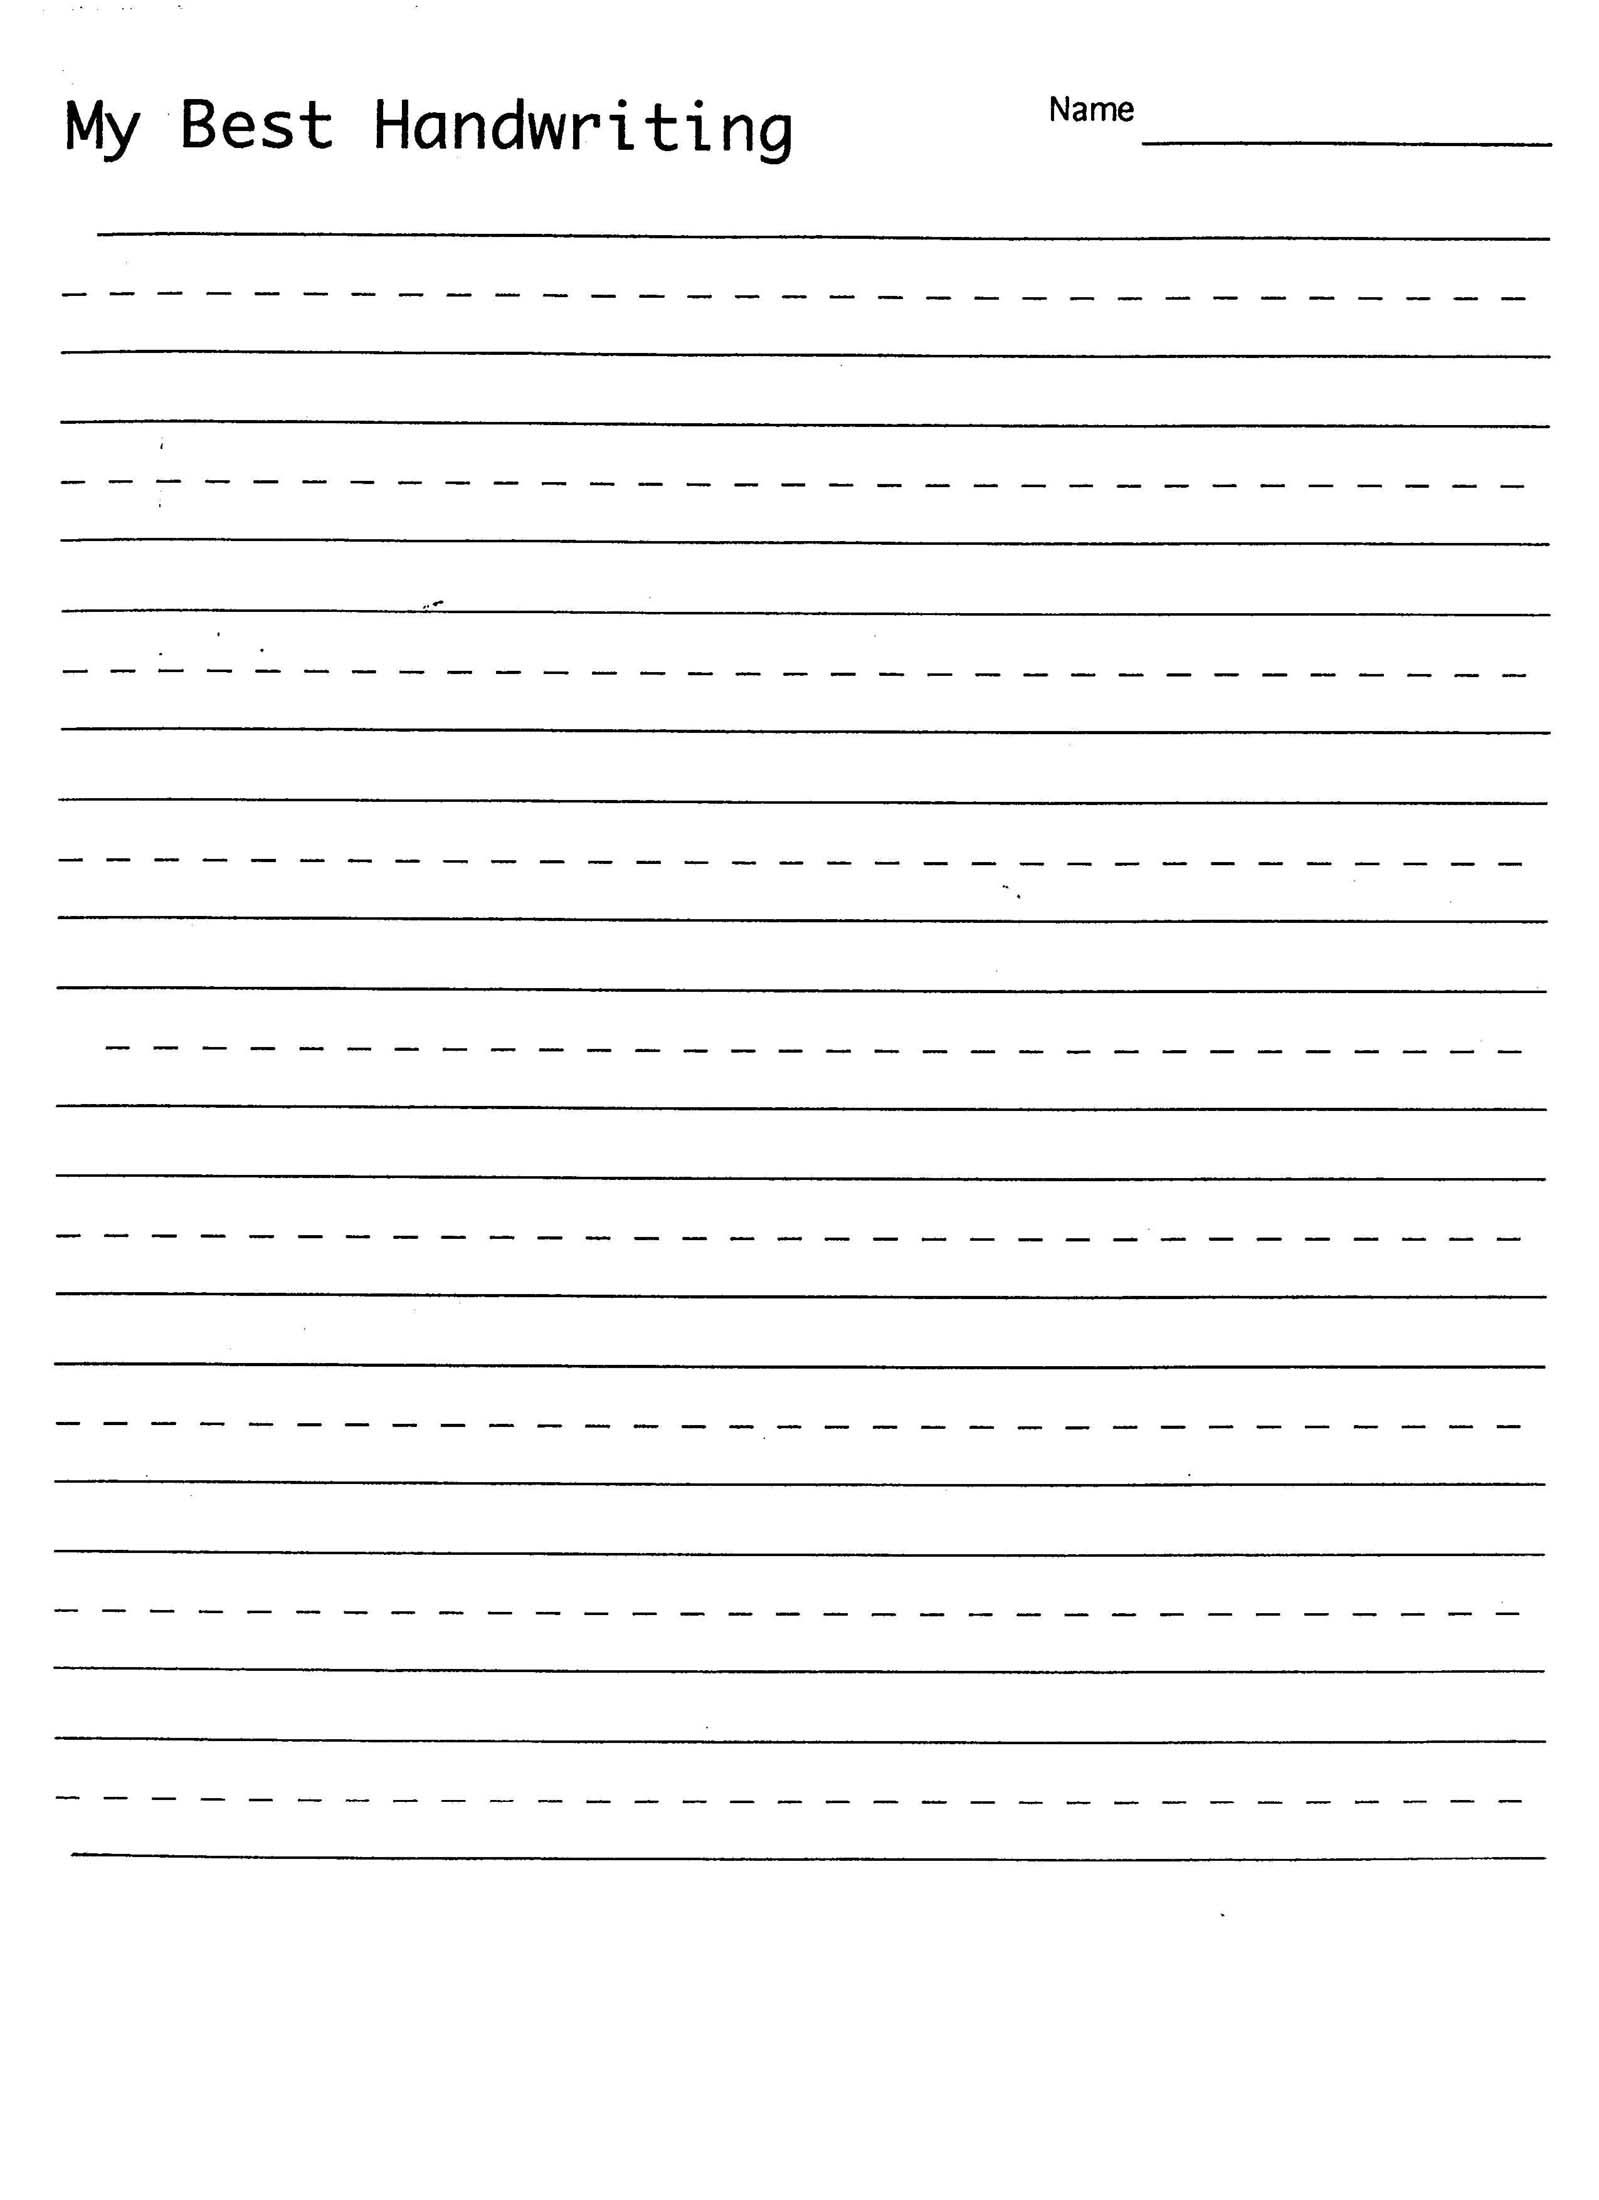 Worksheets Free Handwriting Worksheets Name handwriting practice sheet child education pinterest 6 best images of free printable blank writing worksheet sheet